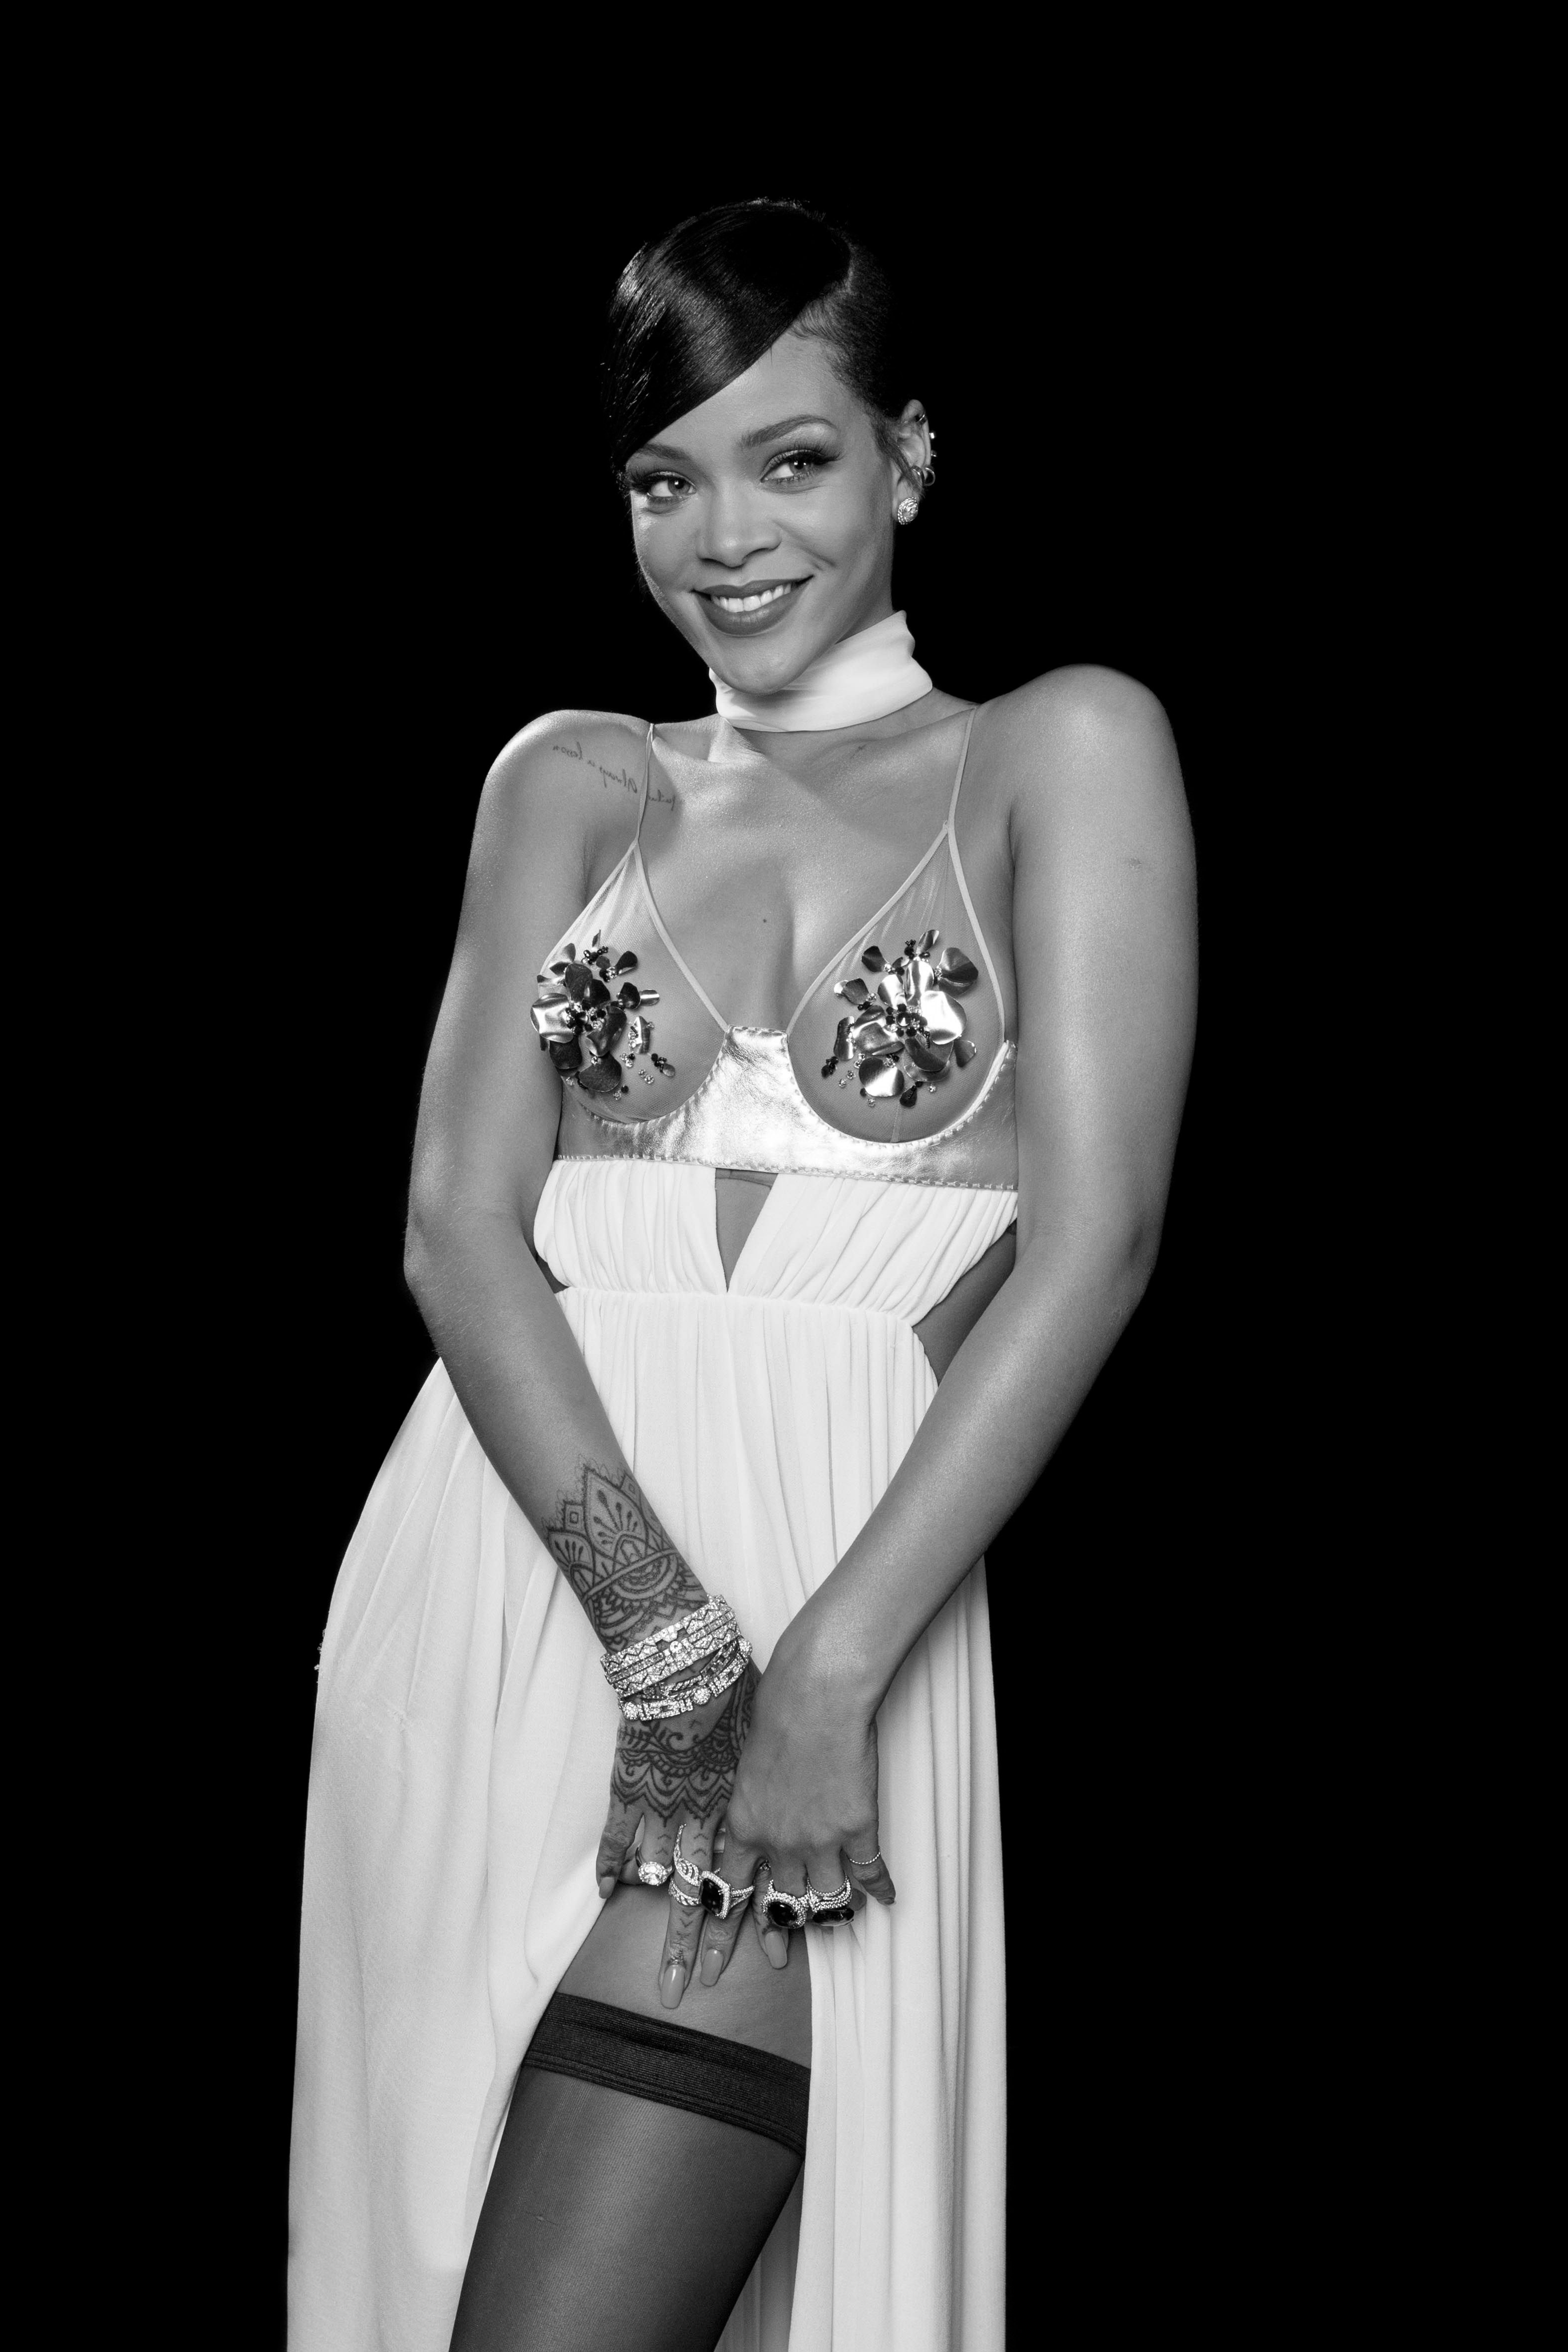 Rihanna to Perform With Orchestra at Diamond Ball Charity Event